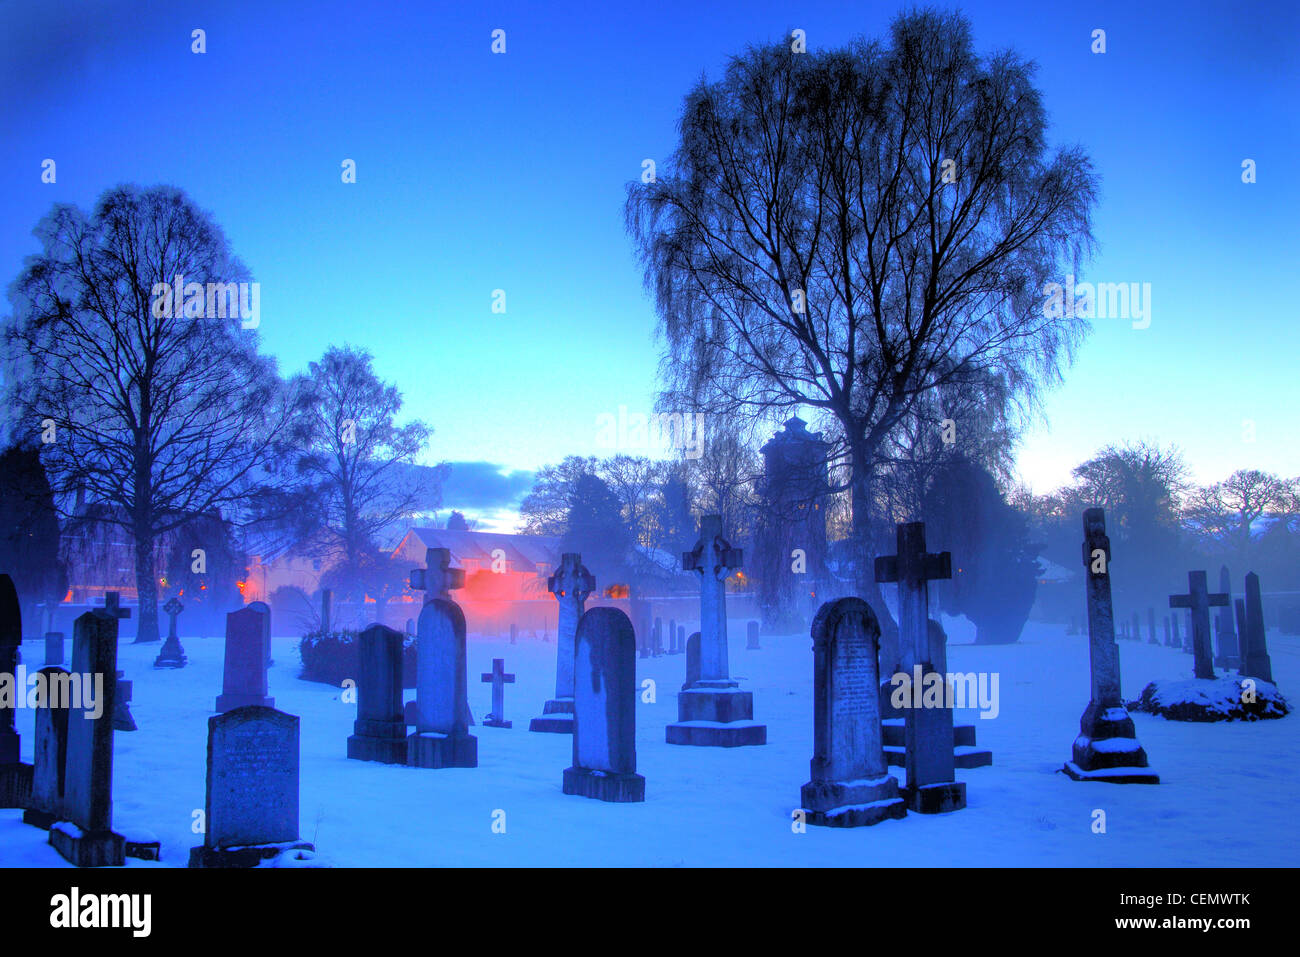 Dalkeith Cemetery Dusk,Midlothian,Edinburgh,Scotland,UK A blue,ice,icy,cold,winters,night,with,low,temperatures.,gotonysmith,icy,ice,snow,snowy,cold,snowing,freezing,freeze,bigfreeze,the,grve,stones,gravestones,cross,crosses,goth,gothic,gotonysmith,Buy Pictures of,Buy Images Of